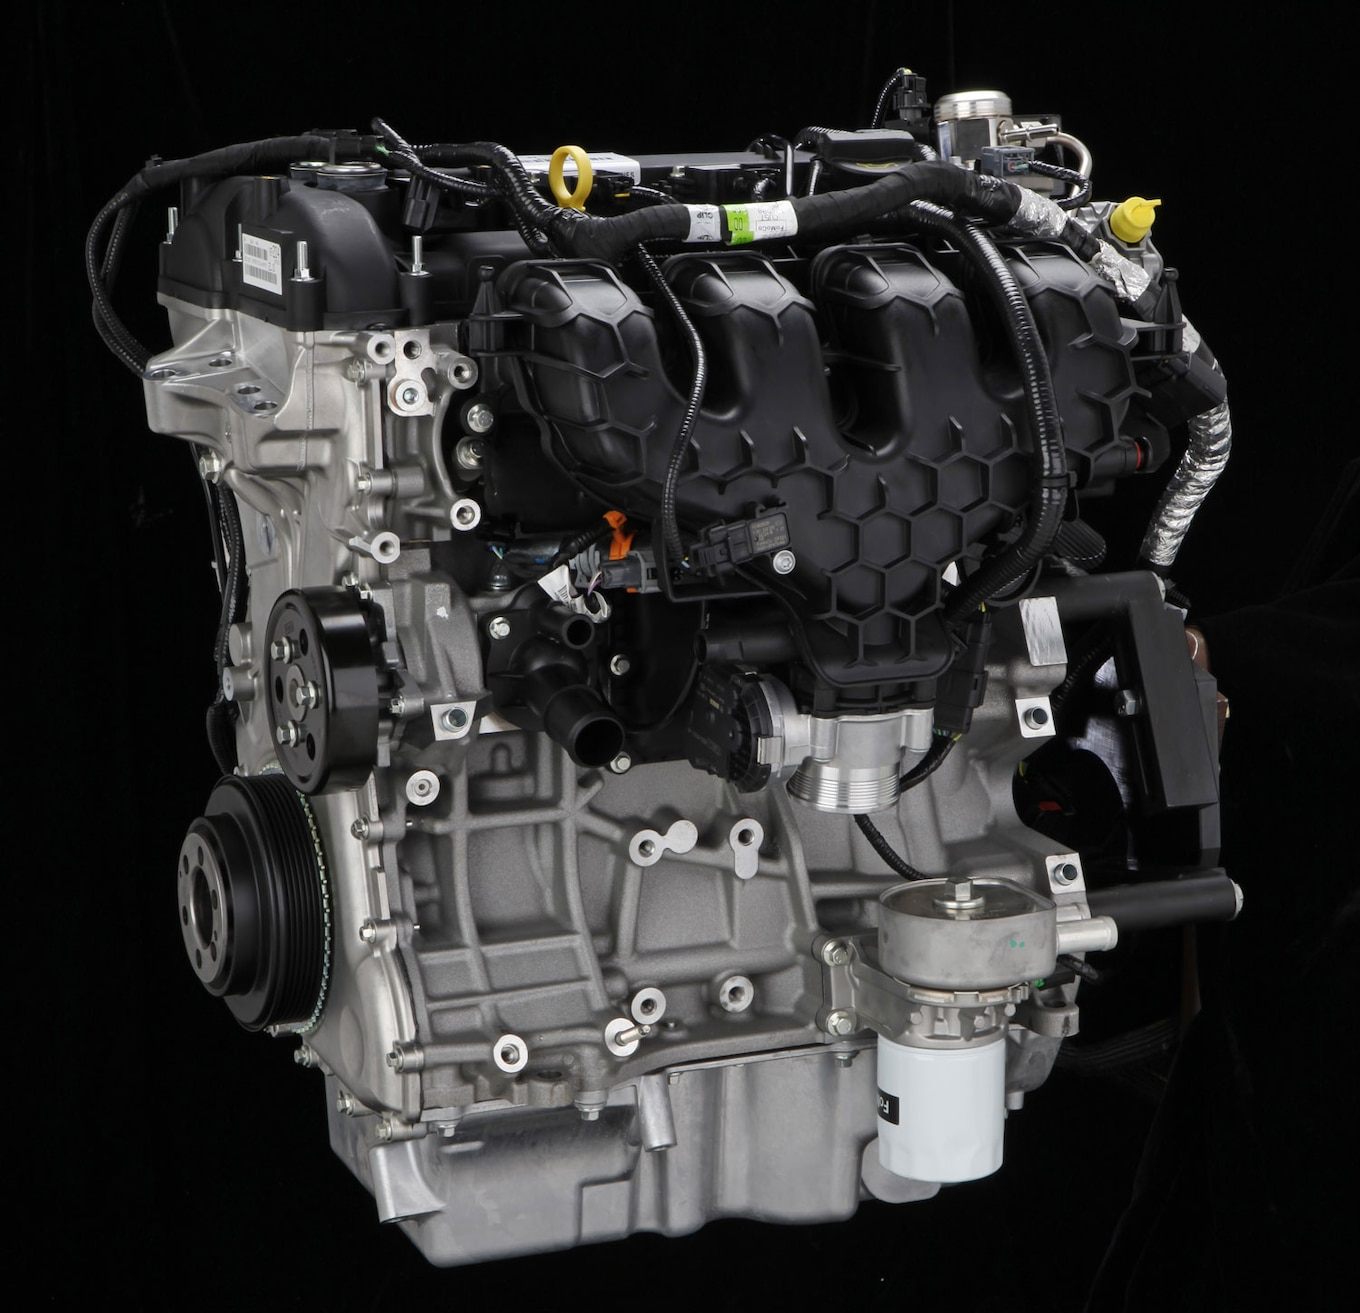 Ford 240 Engine Diagram Ford Wants To Boost European Ecoboost Sales To 480 000 By 2015